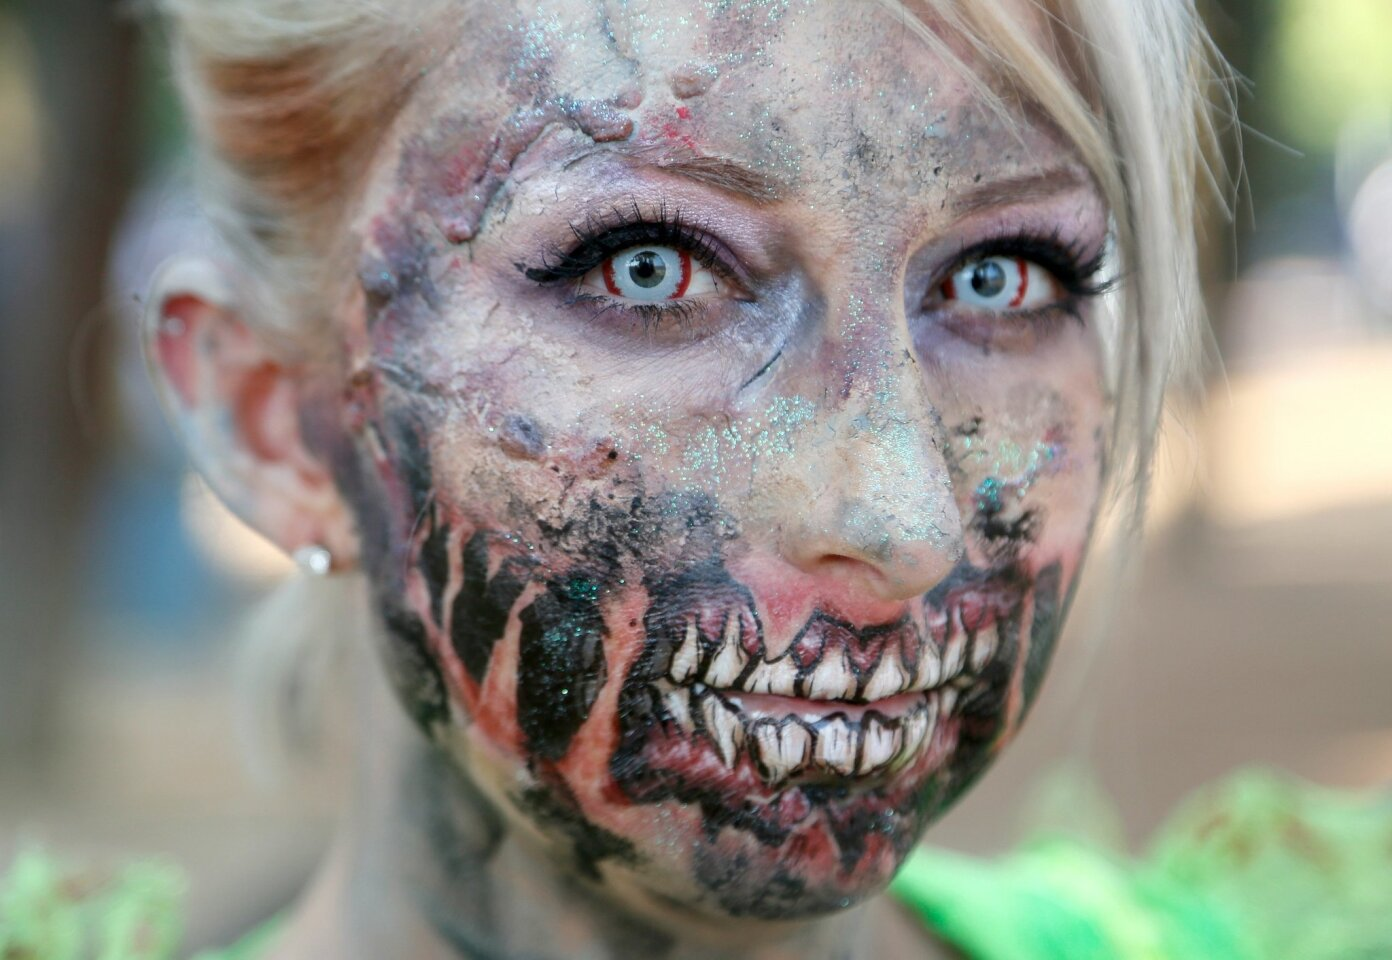 Michelle Stubblefield of Los Angeles prepares to participate in the Zombie Walk at San Diego Comic-Con 2016. #sdcc2016